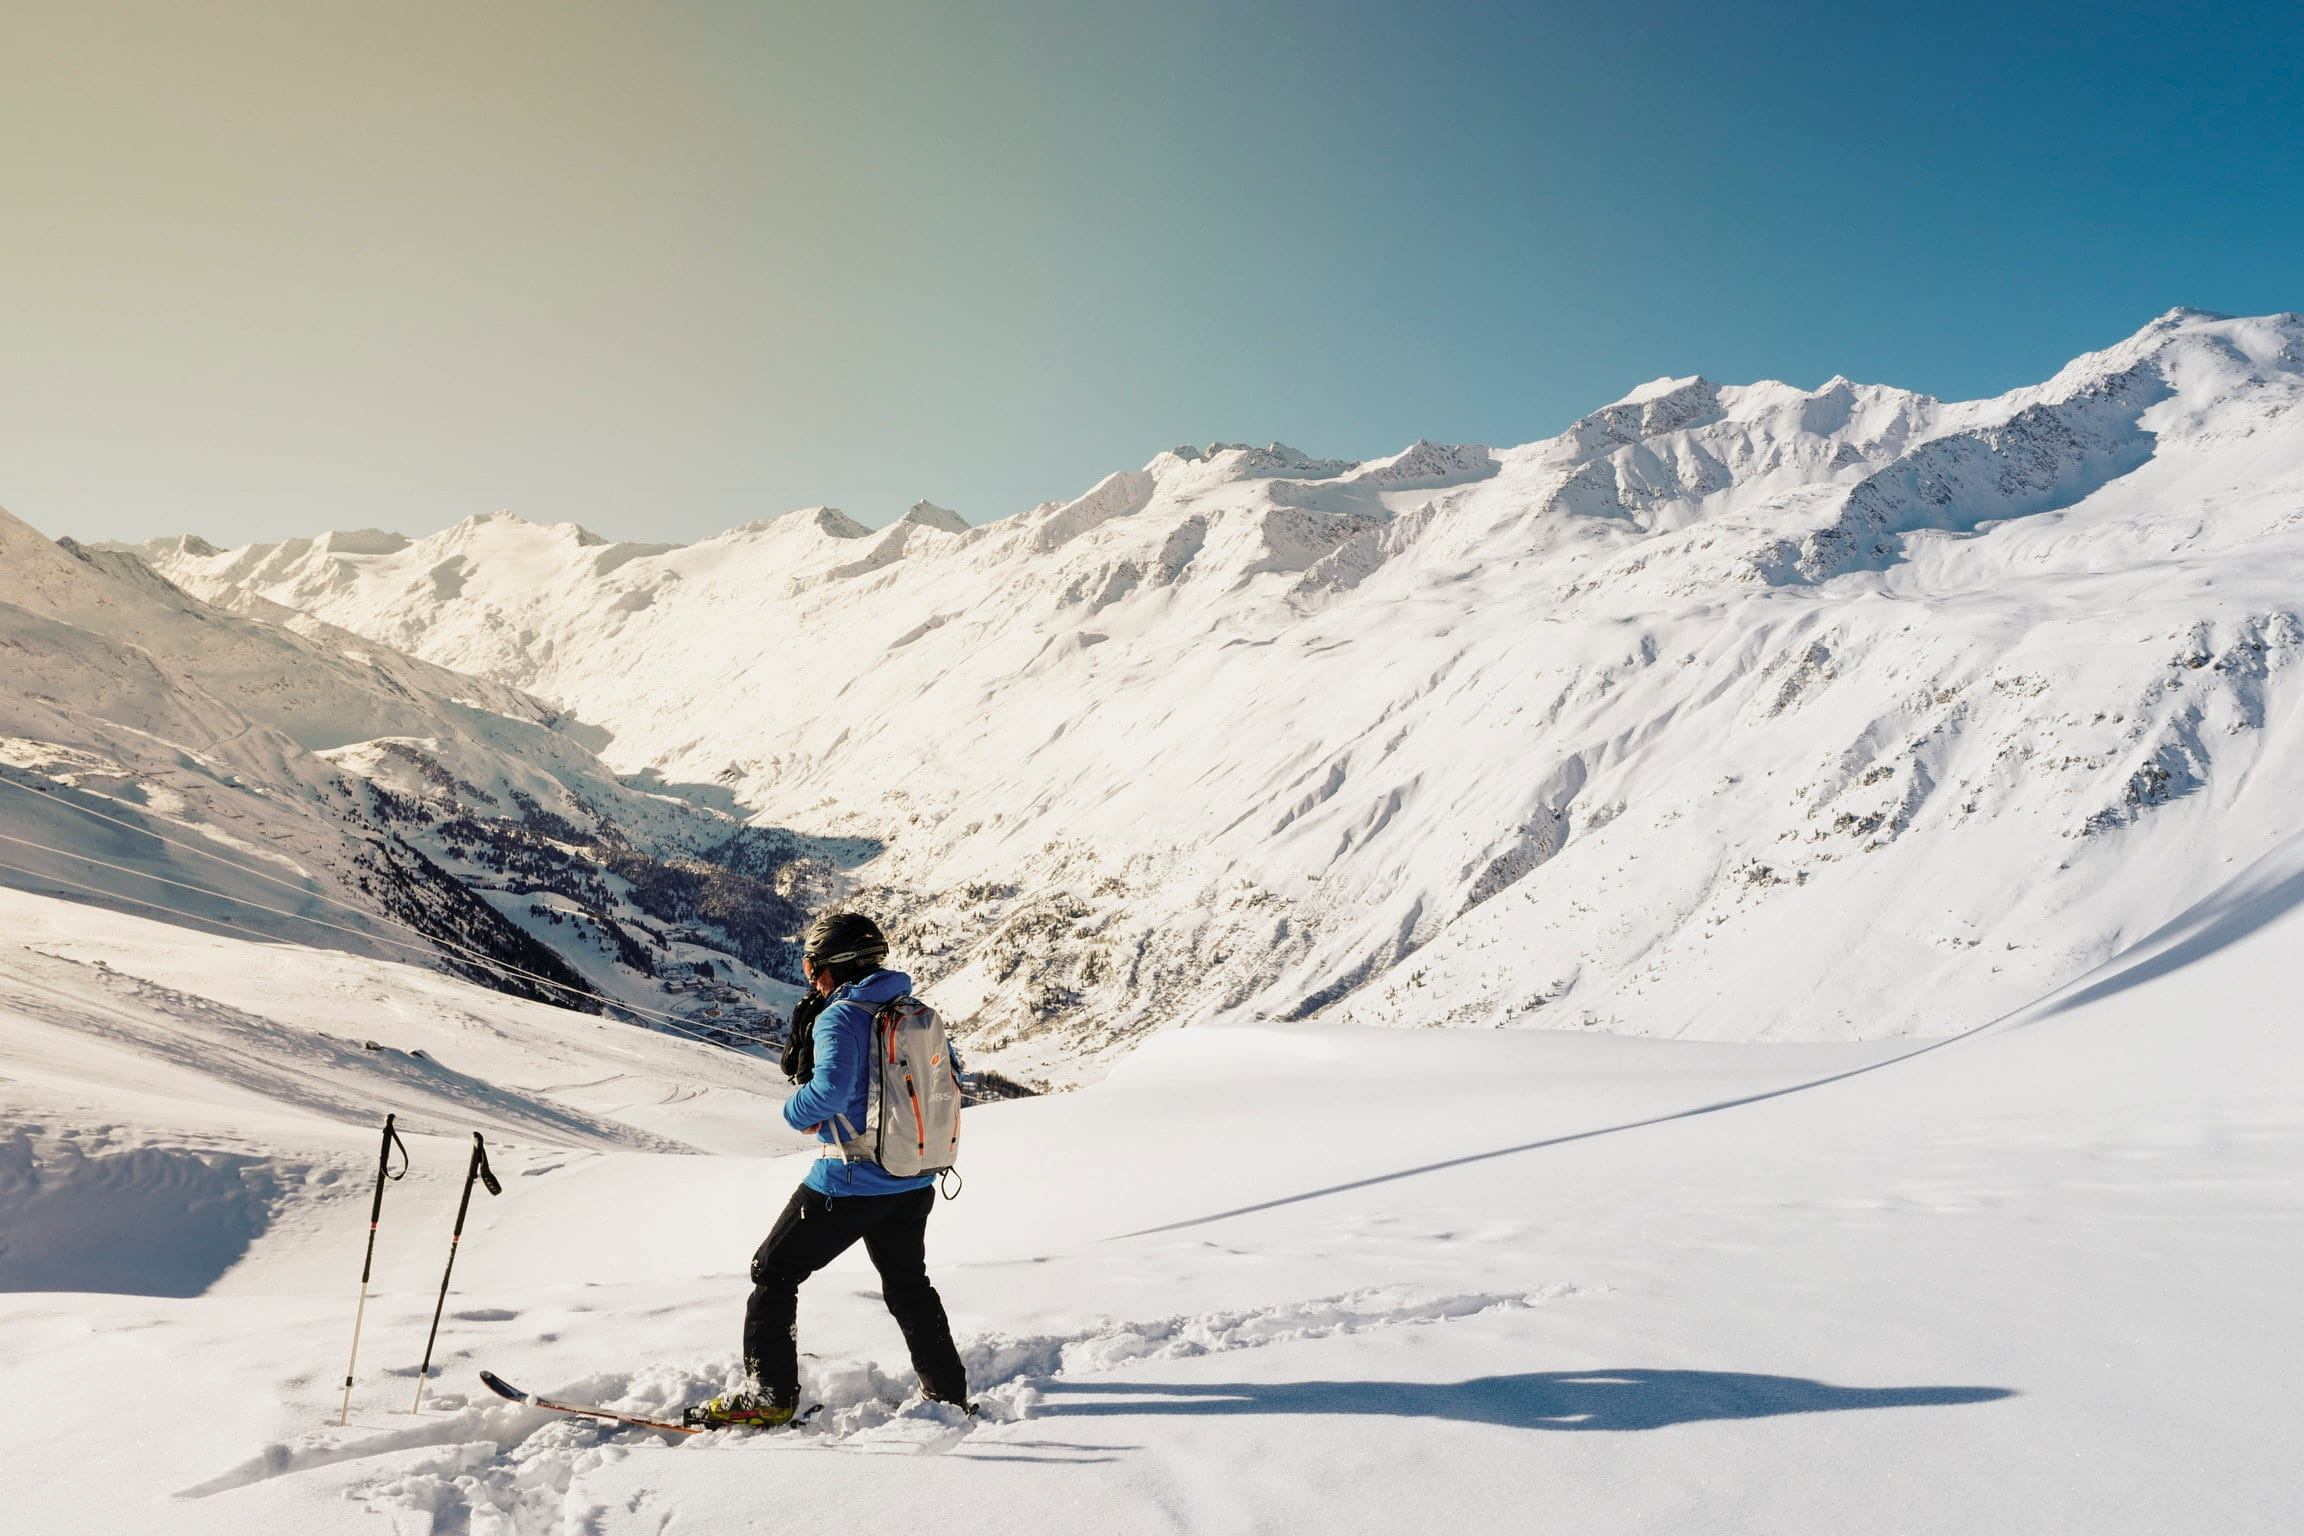 Skier surrounded by mountain slopes